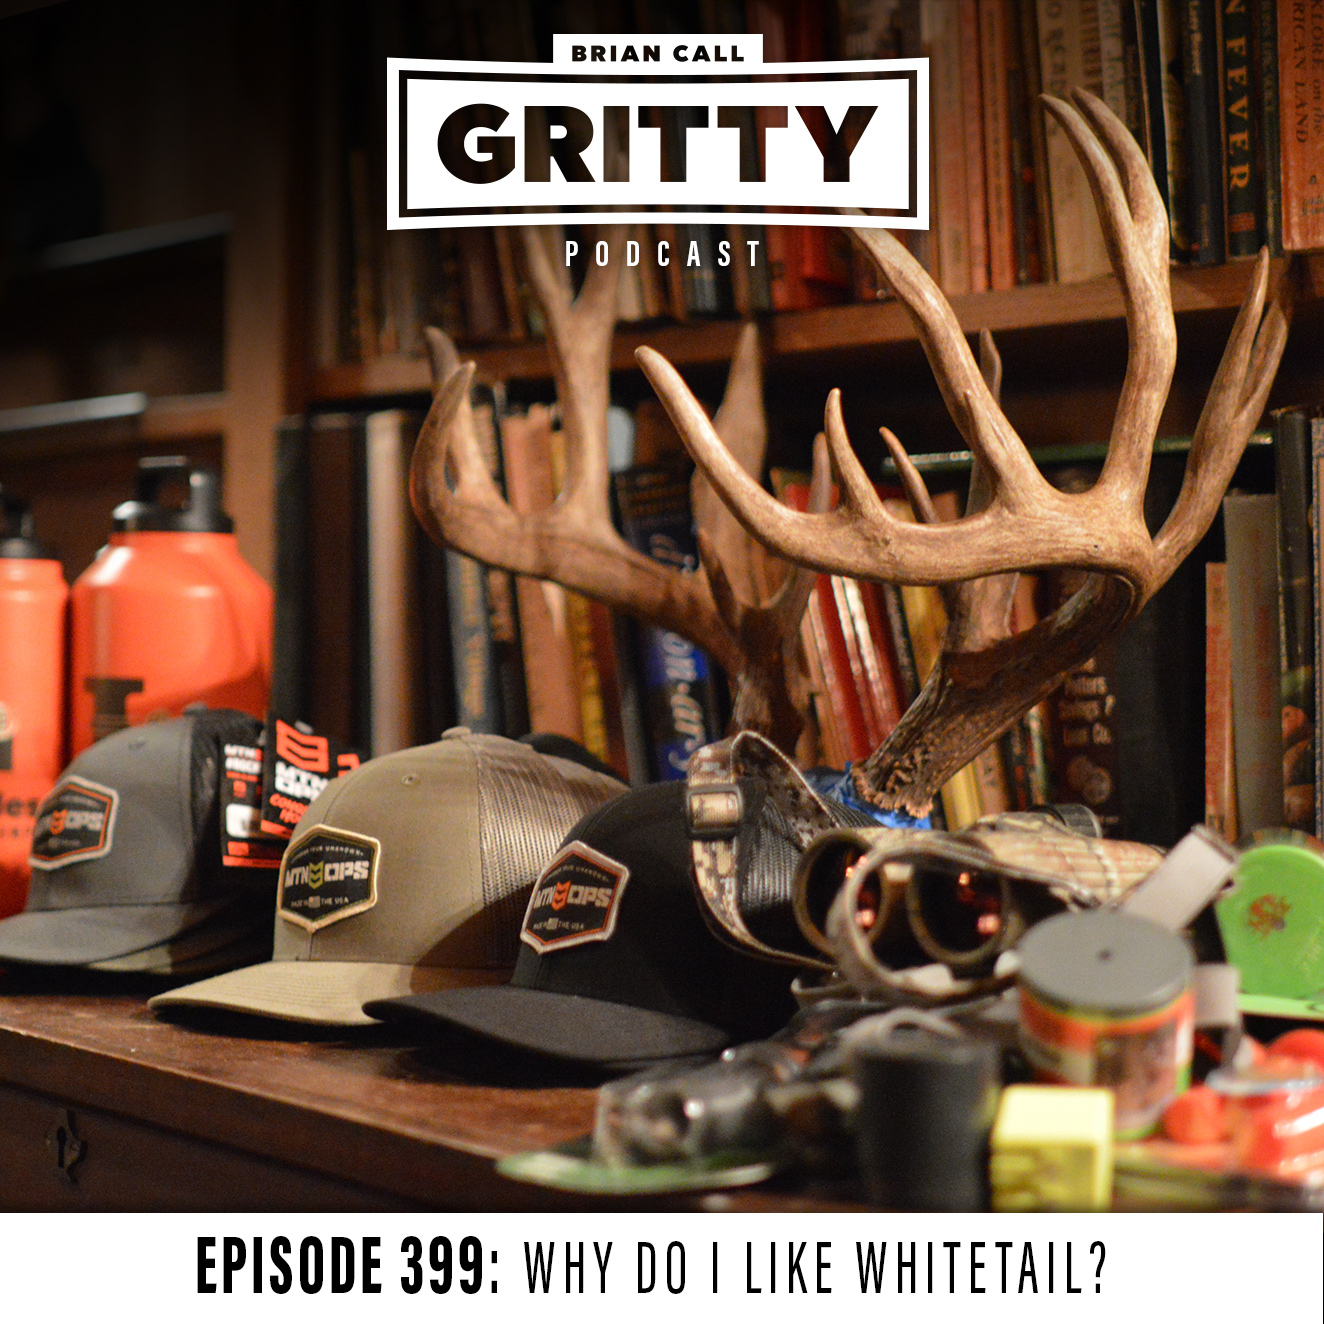 EPISODE 399: WHY DO I LIKE WHITETAIL?